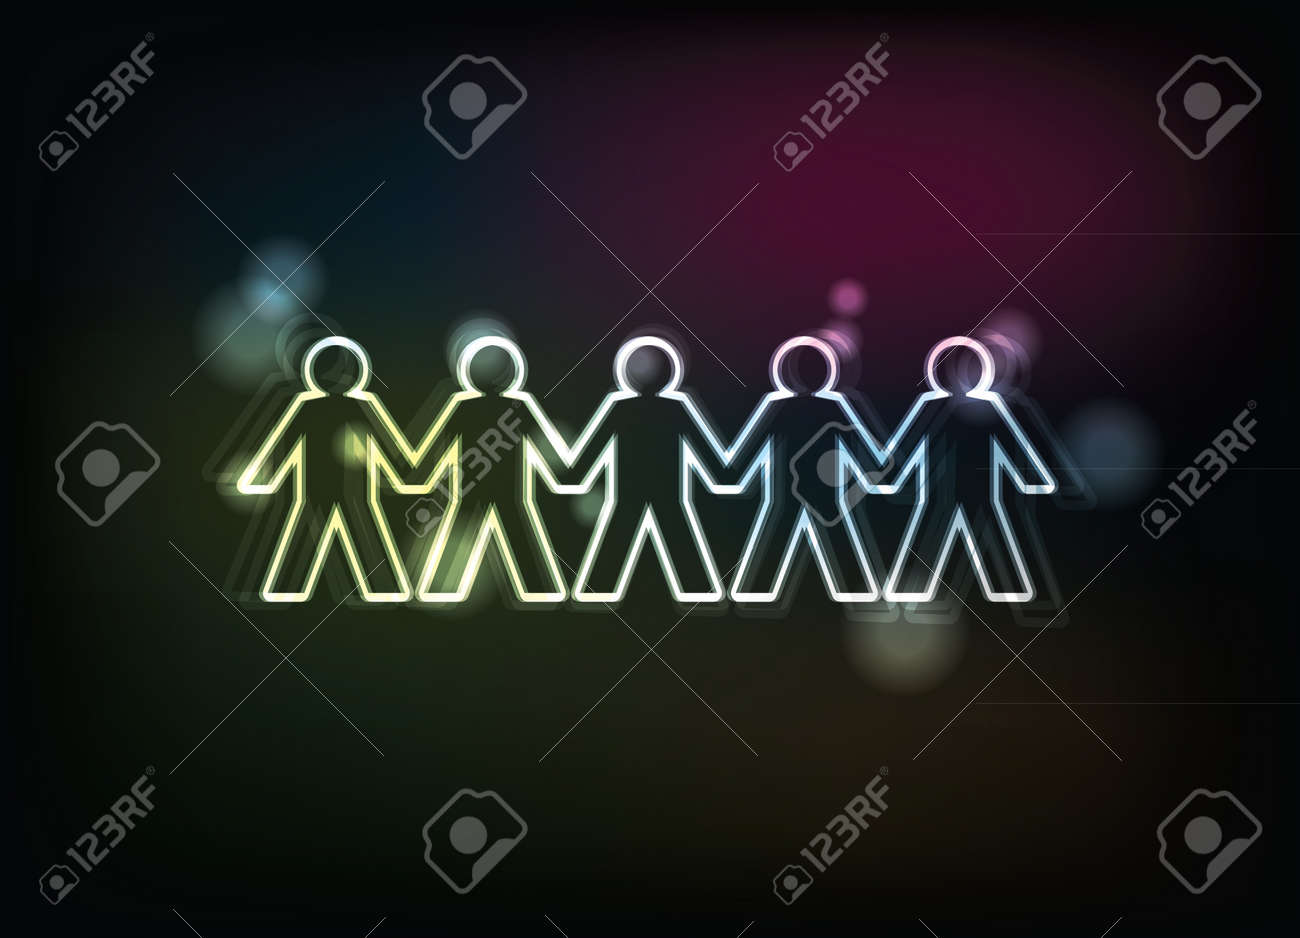 human figures in a row - illustration Stock Vector - 14458038